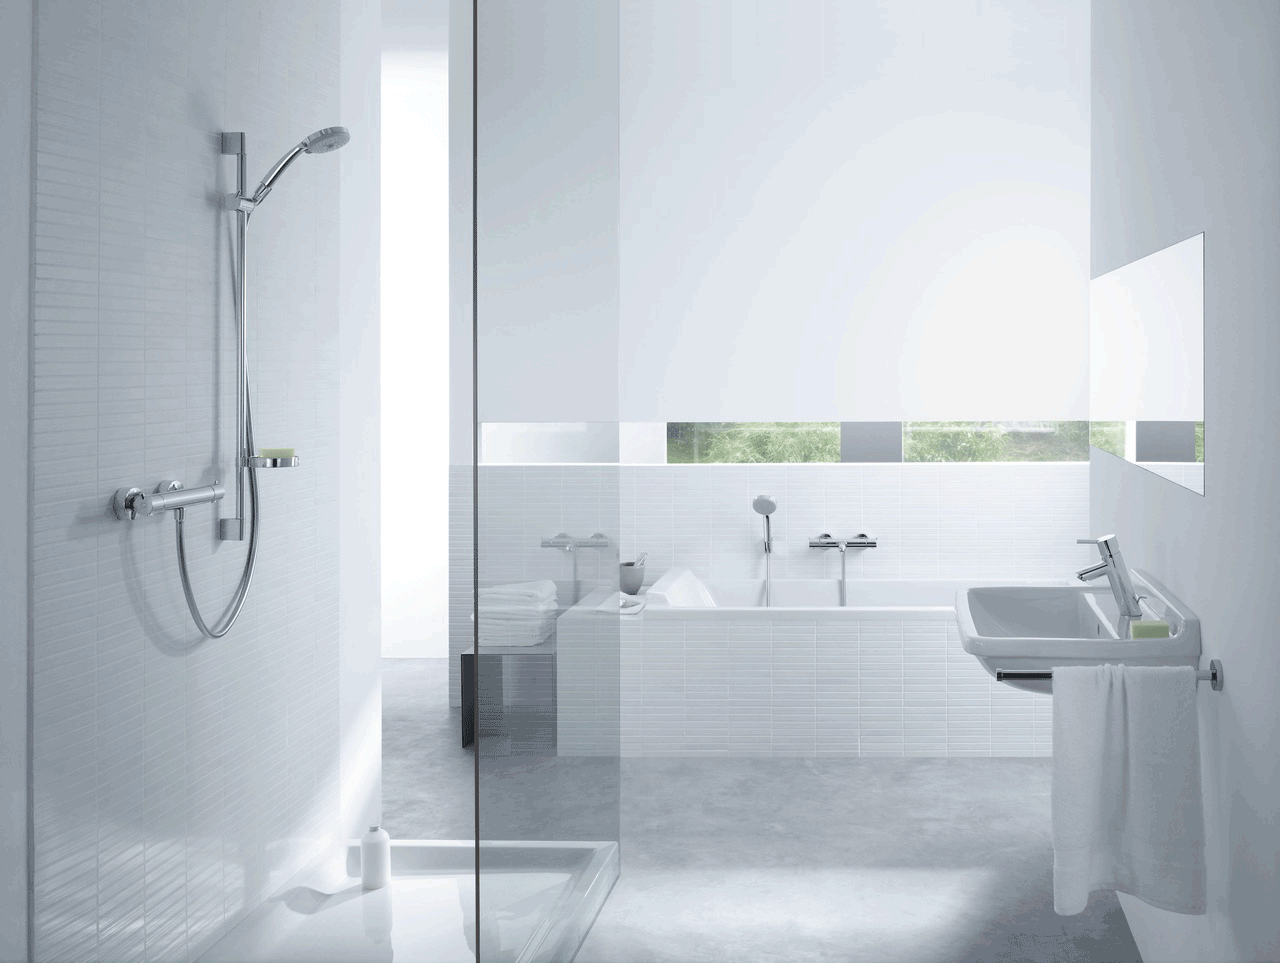 Hans Grohe Hansgrohe Bathroom Design At Bathline Luxury Bathrooms Northern